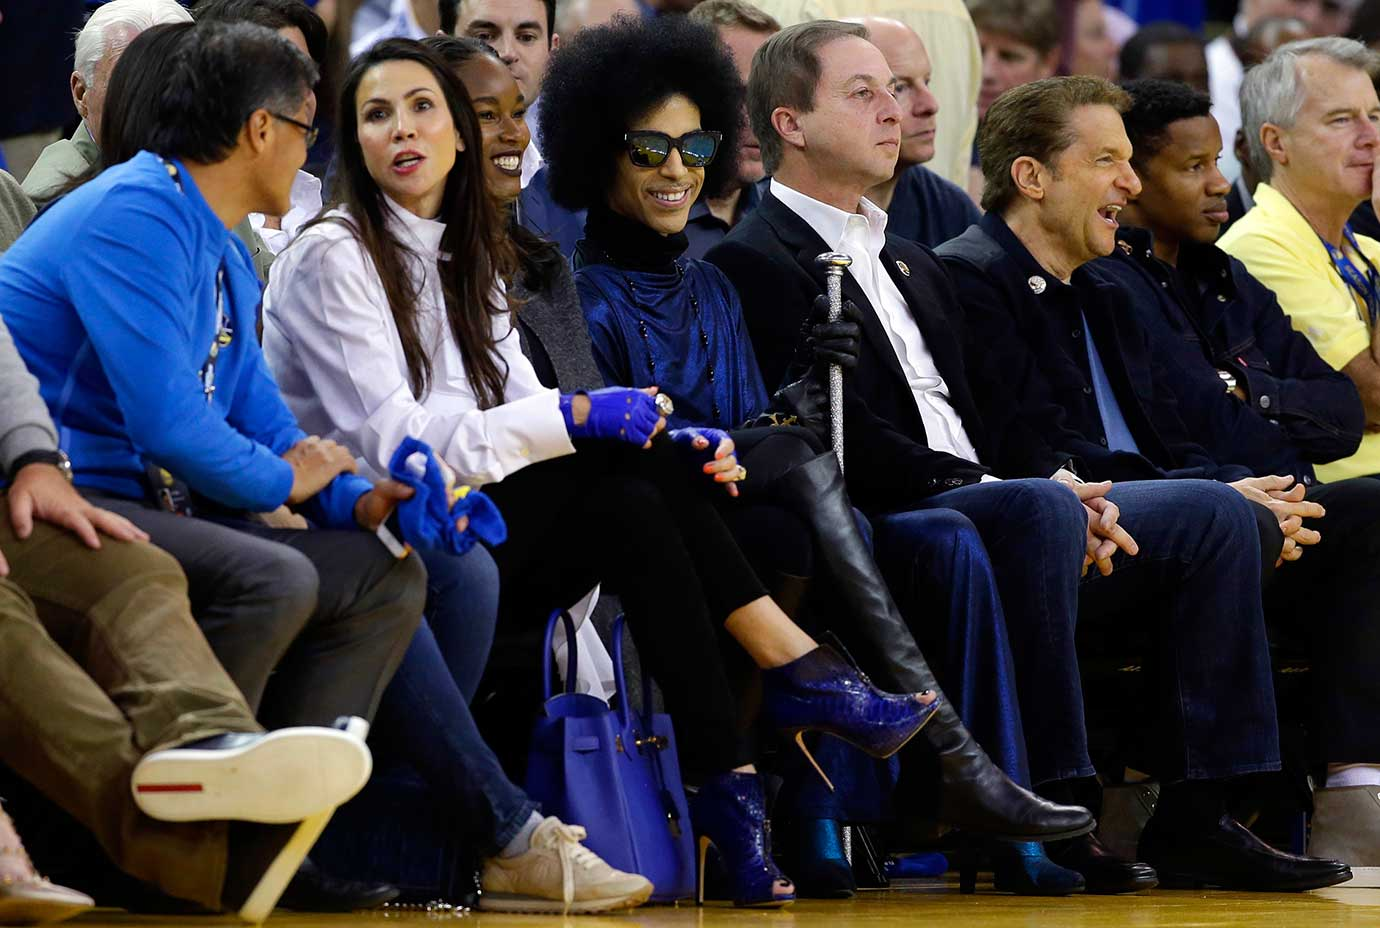 Singer Prince smiles as he watches the Golden State Warriors game vs. Oklahoma City in Oakland.